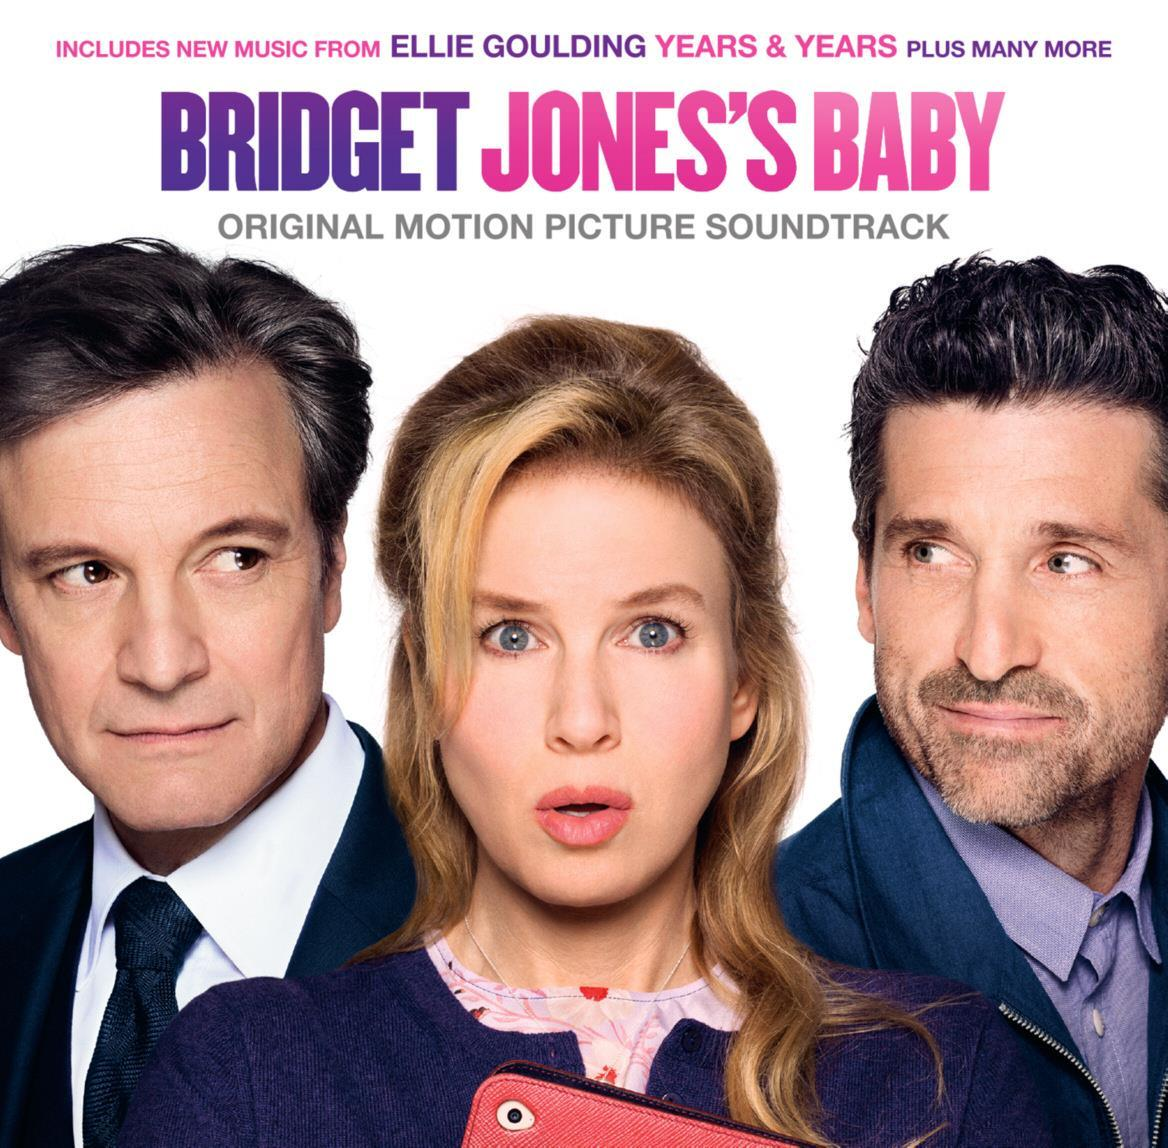 FILMZENE - BRIDGET JONES'S BABY - SOUNDTRACK - CD -